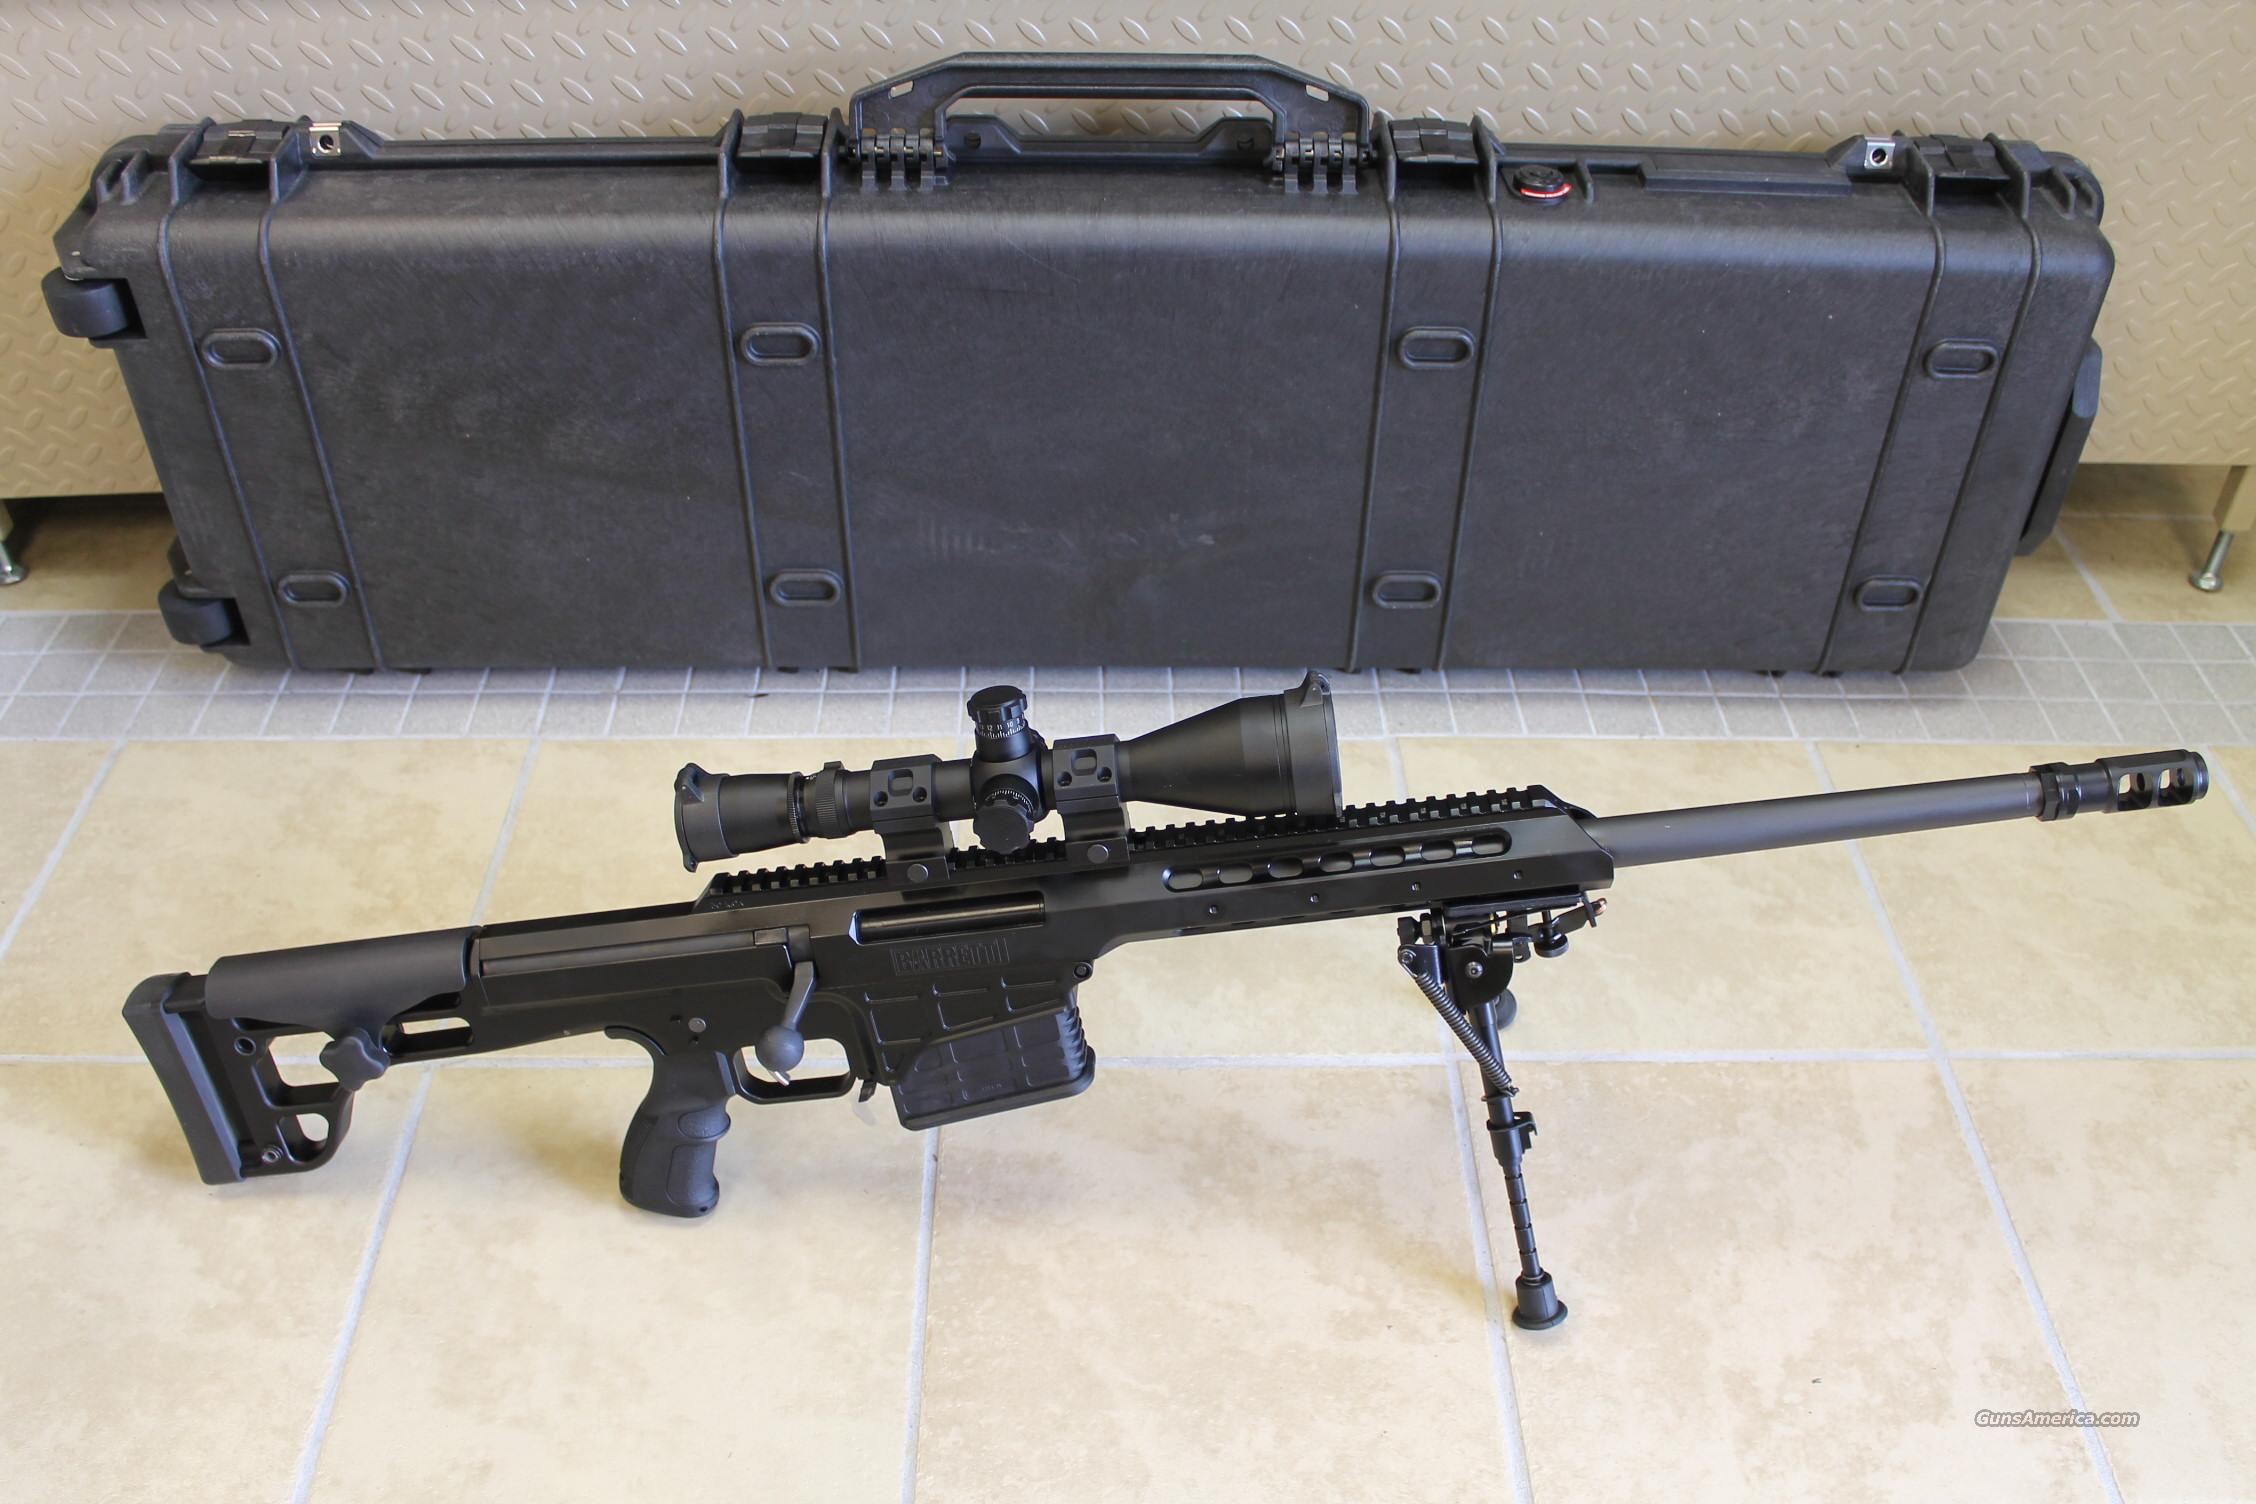 "NIB BARRETT MODEL 98B, .338 LAPUA, 20"" HEAVY BARREL,  w/LEUPOLD MARK-4 M1 SCOPE, 2 MAGS, PELICAN CASE, CLEANING &  FIELD KITS!!!  Guns > Rifles > Barrett Rifles"